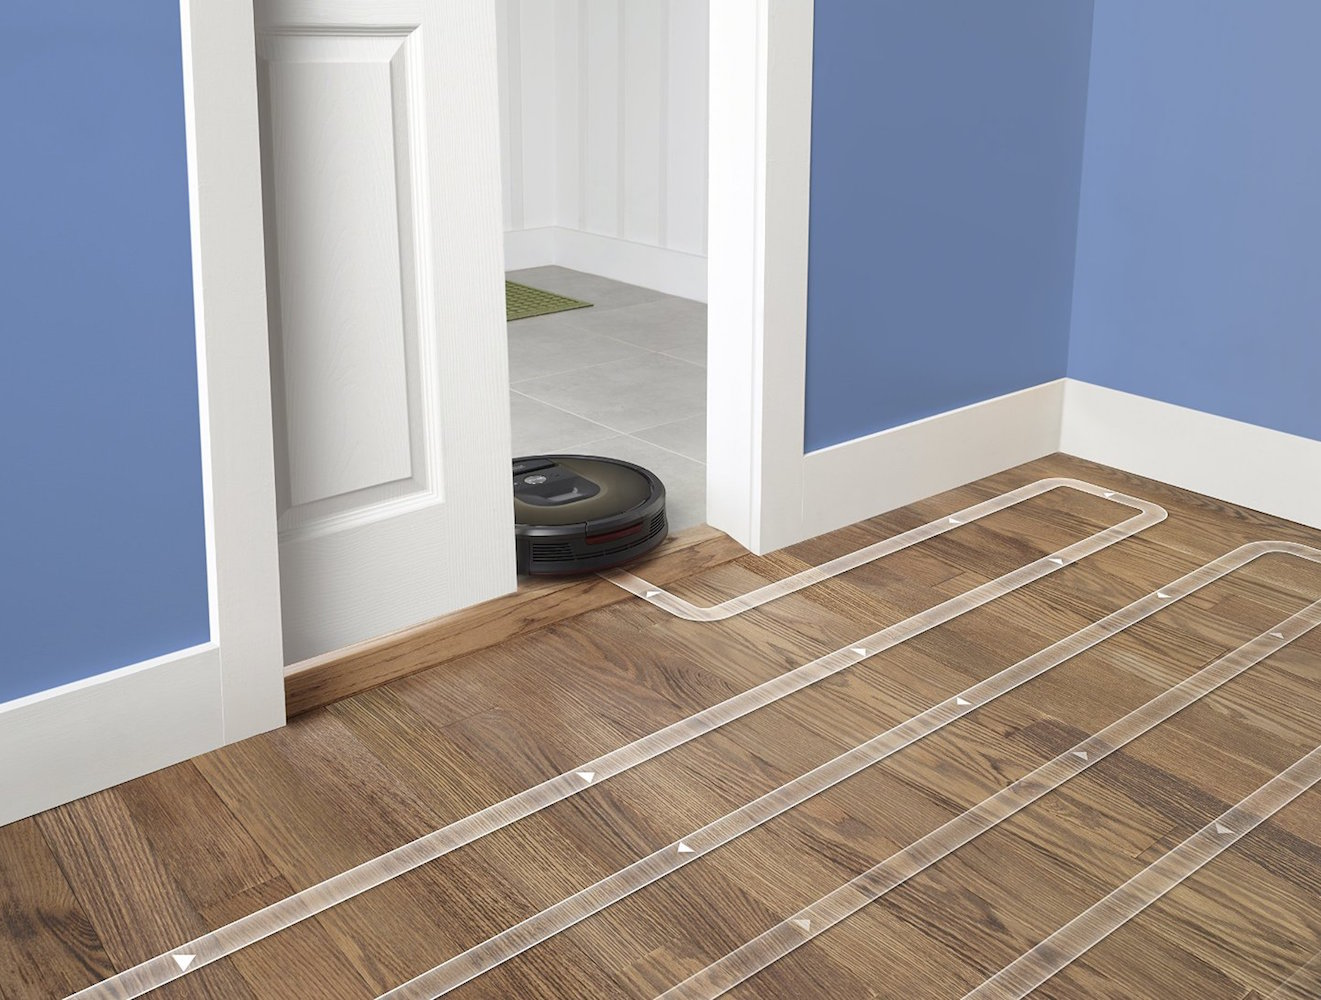 Roomba 980 Vacuum Cleaning Robot By Irobot 187 Gadget Flow